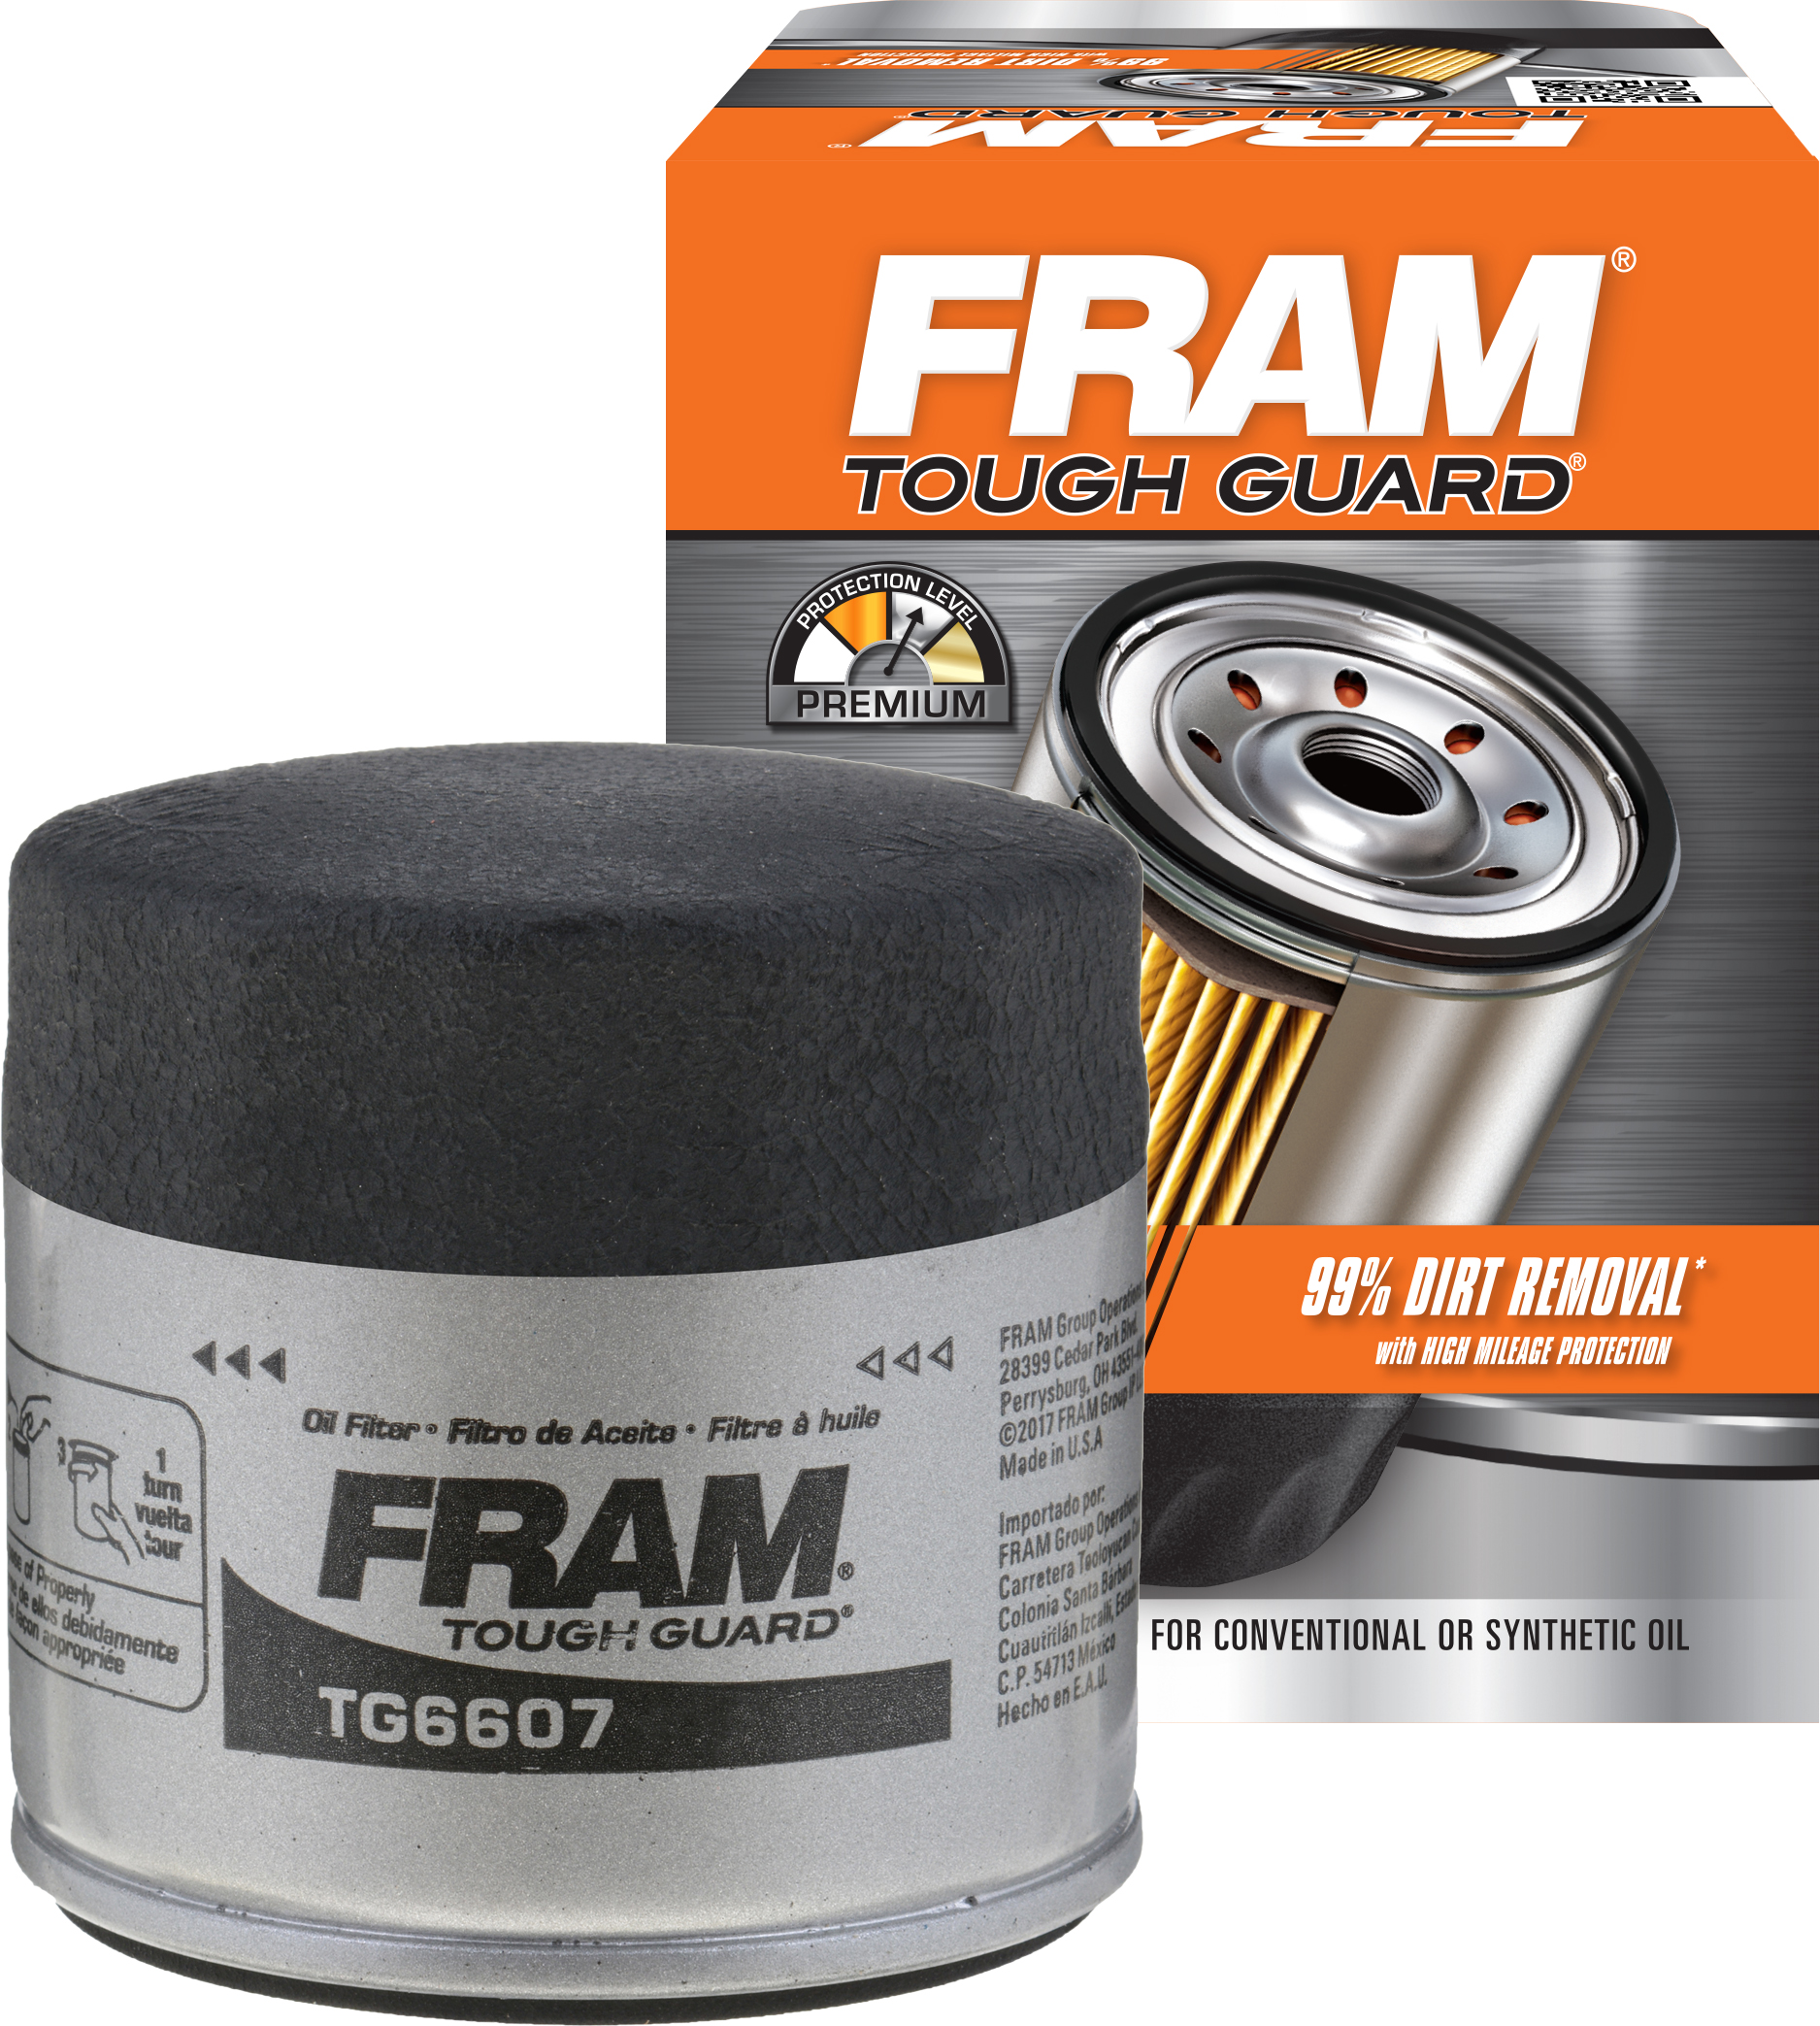 FRAM Tough Guard Oil Filter, TG6607